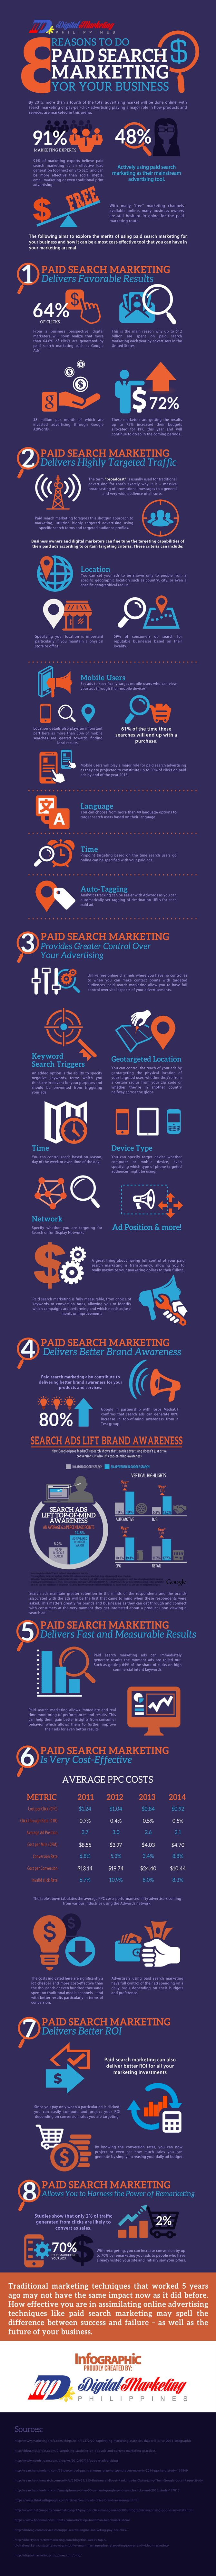 What Are 8 Reasons You Need To Do Paid Search Marketing For Lead Generation? #infographic